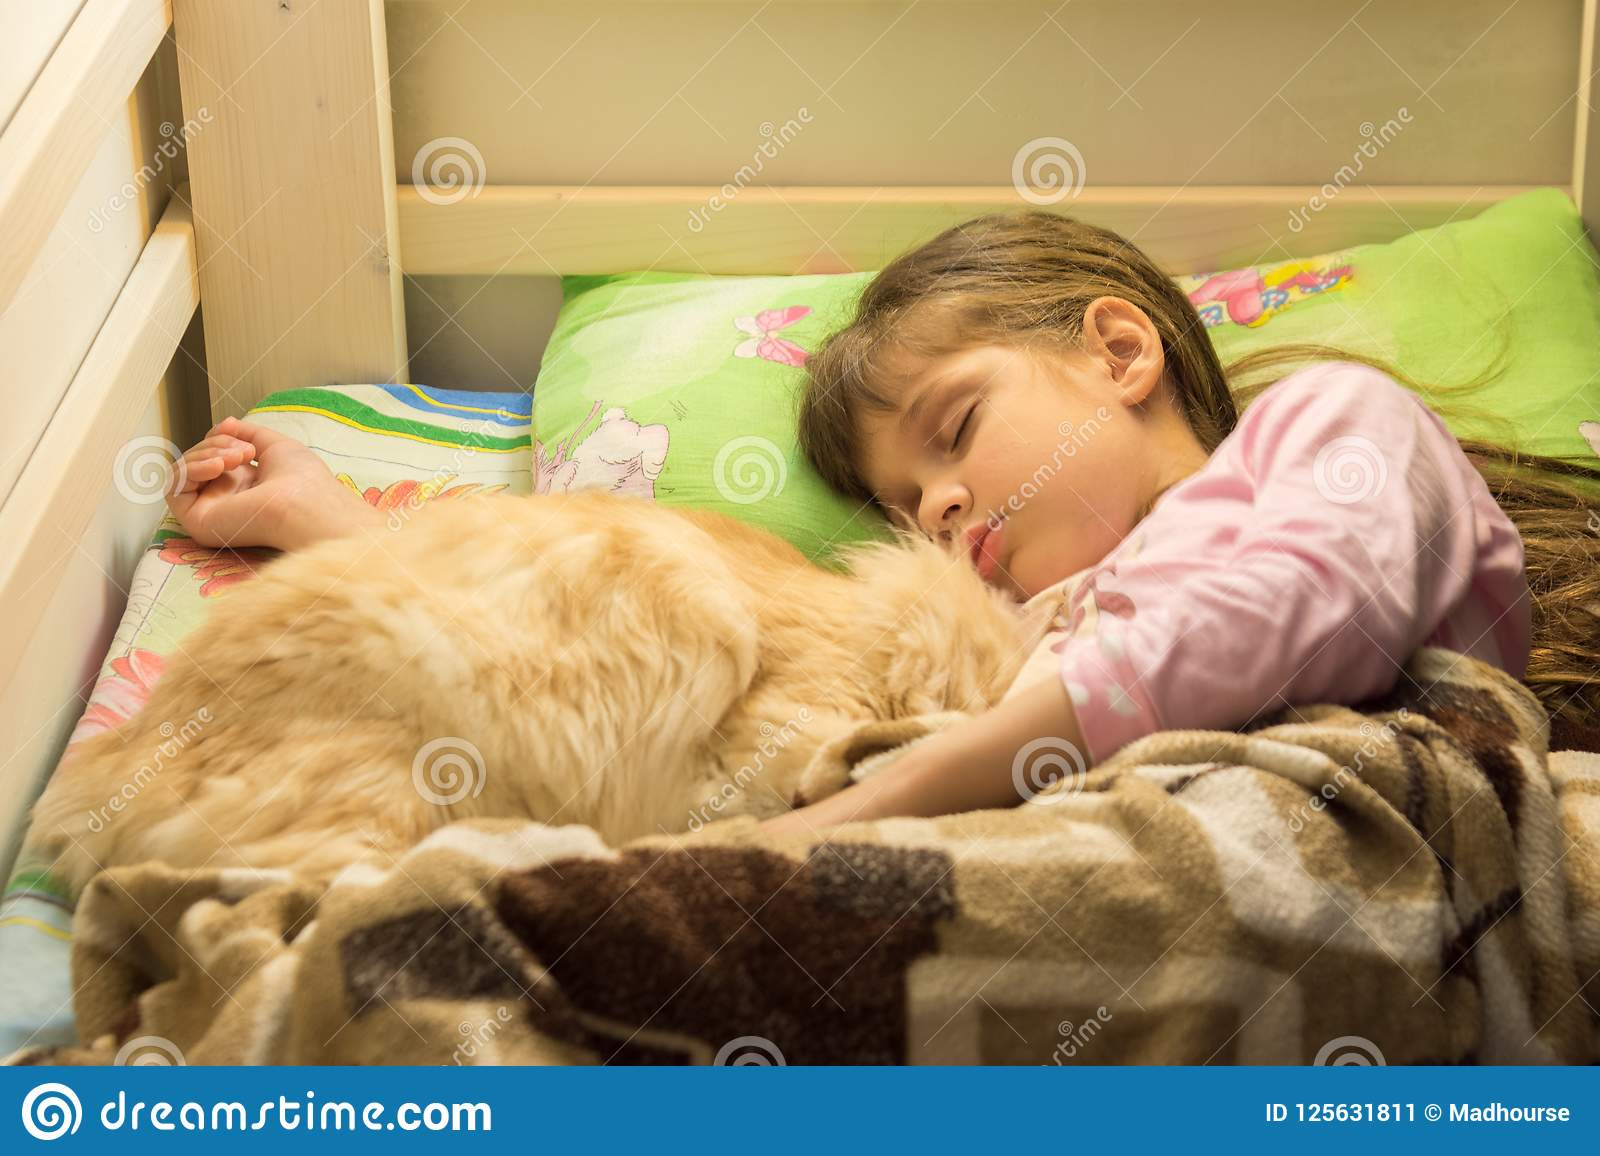 Little girl sleeping in bed with cat